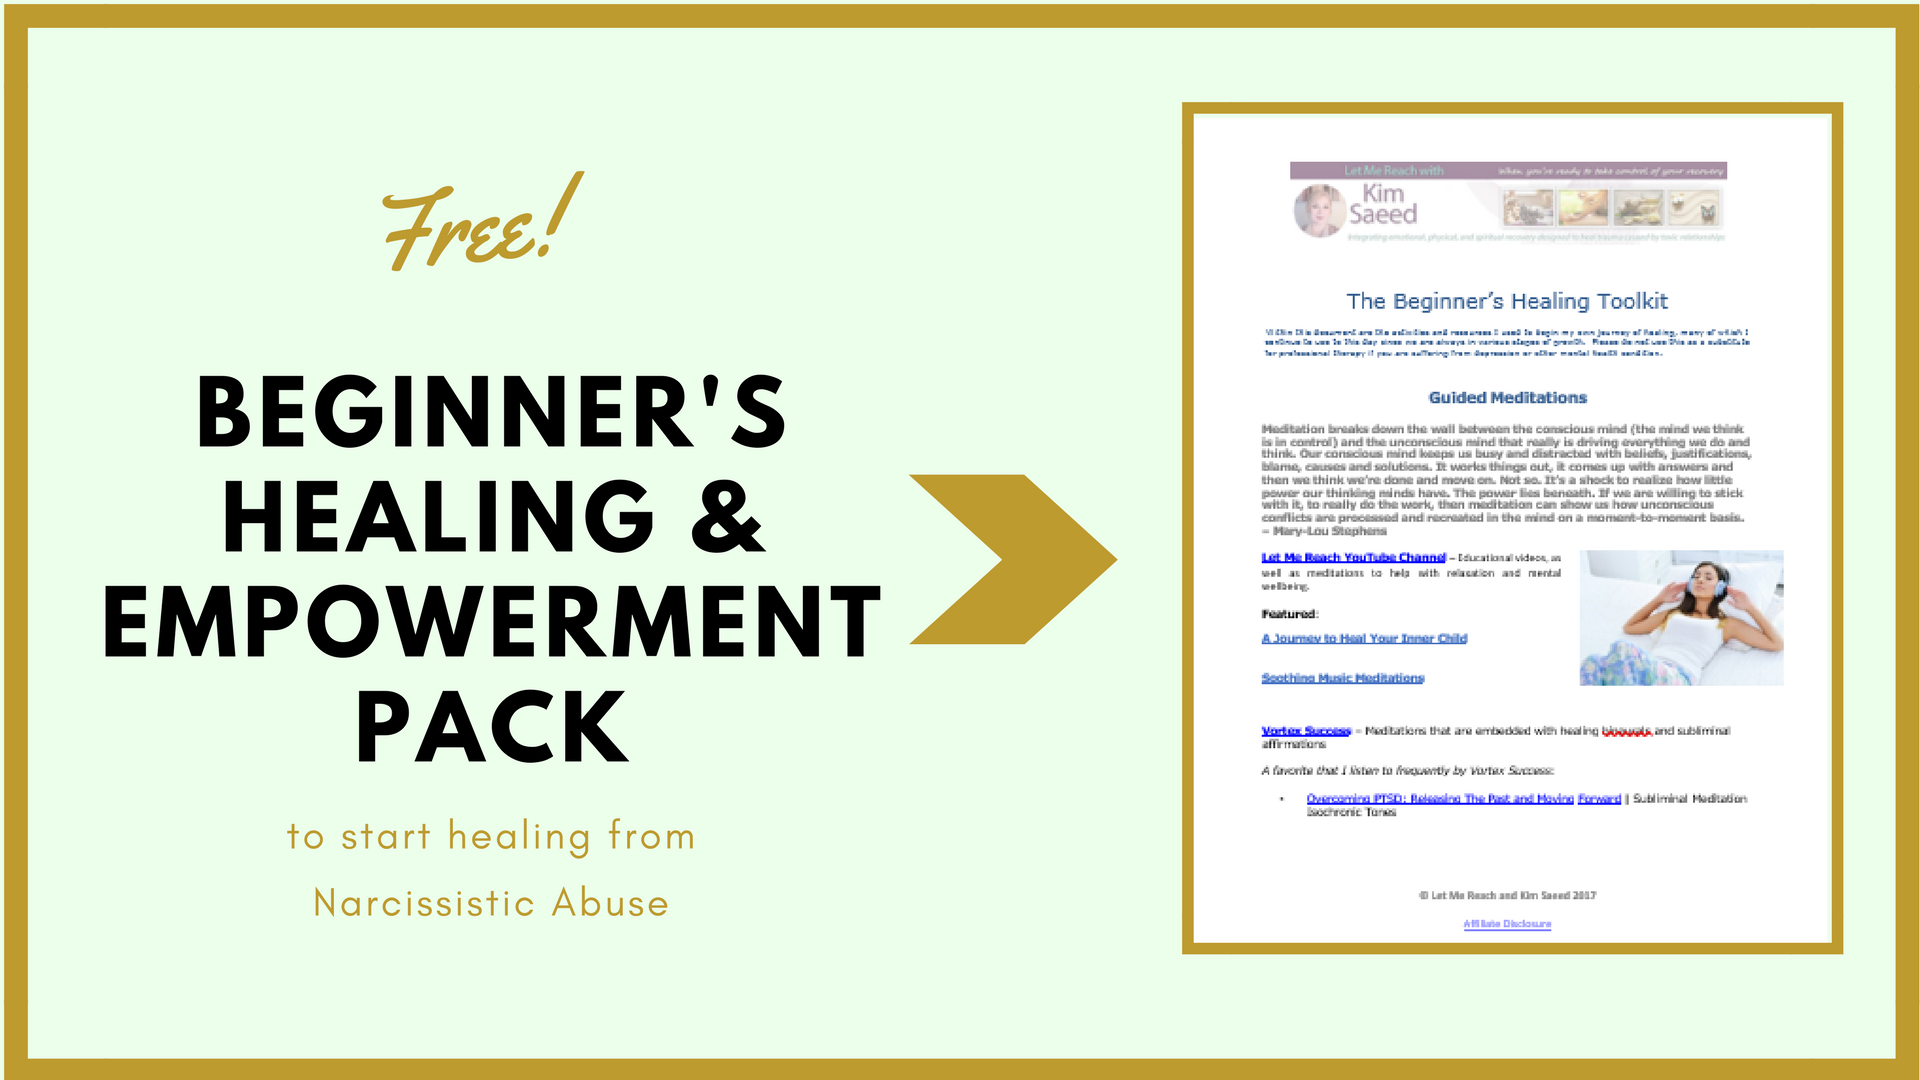 Snag your free healing toolkit!